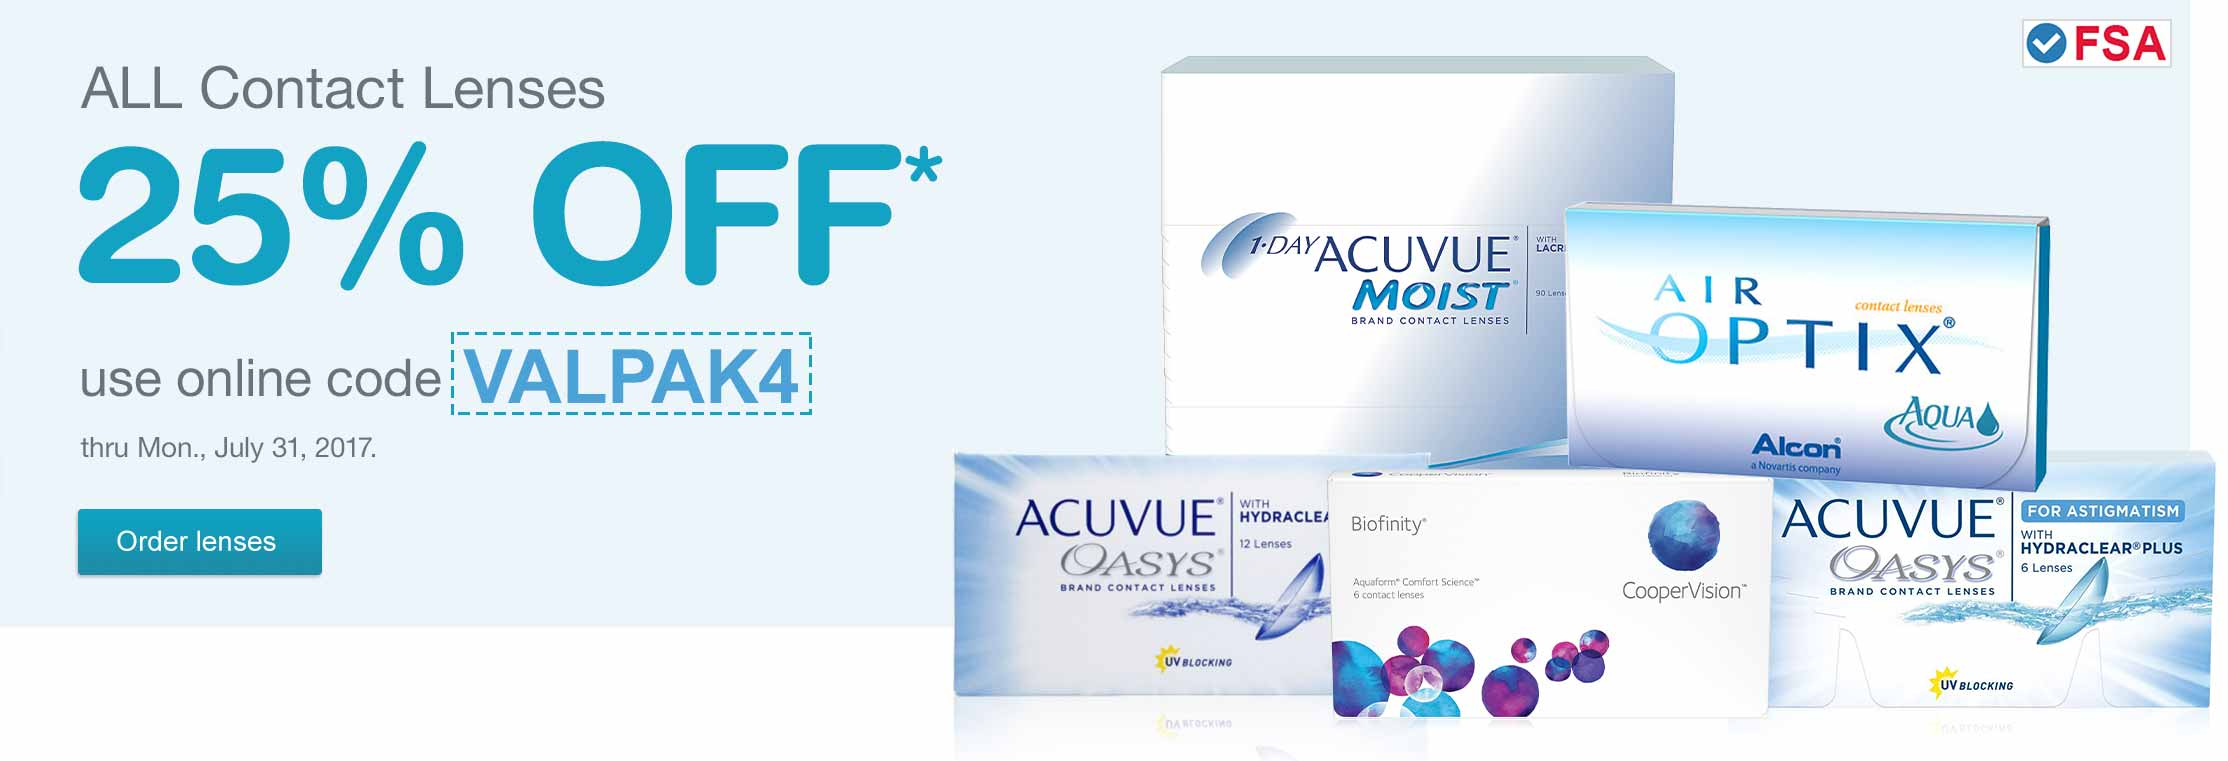 ALL Contact Lenses 25% OFF.* Use online code VALPAK4 thru Mon., July 31, 2017. FSA approved. Order lenses.